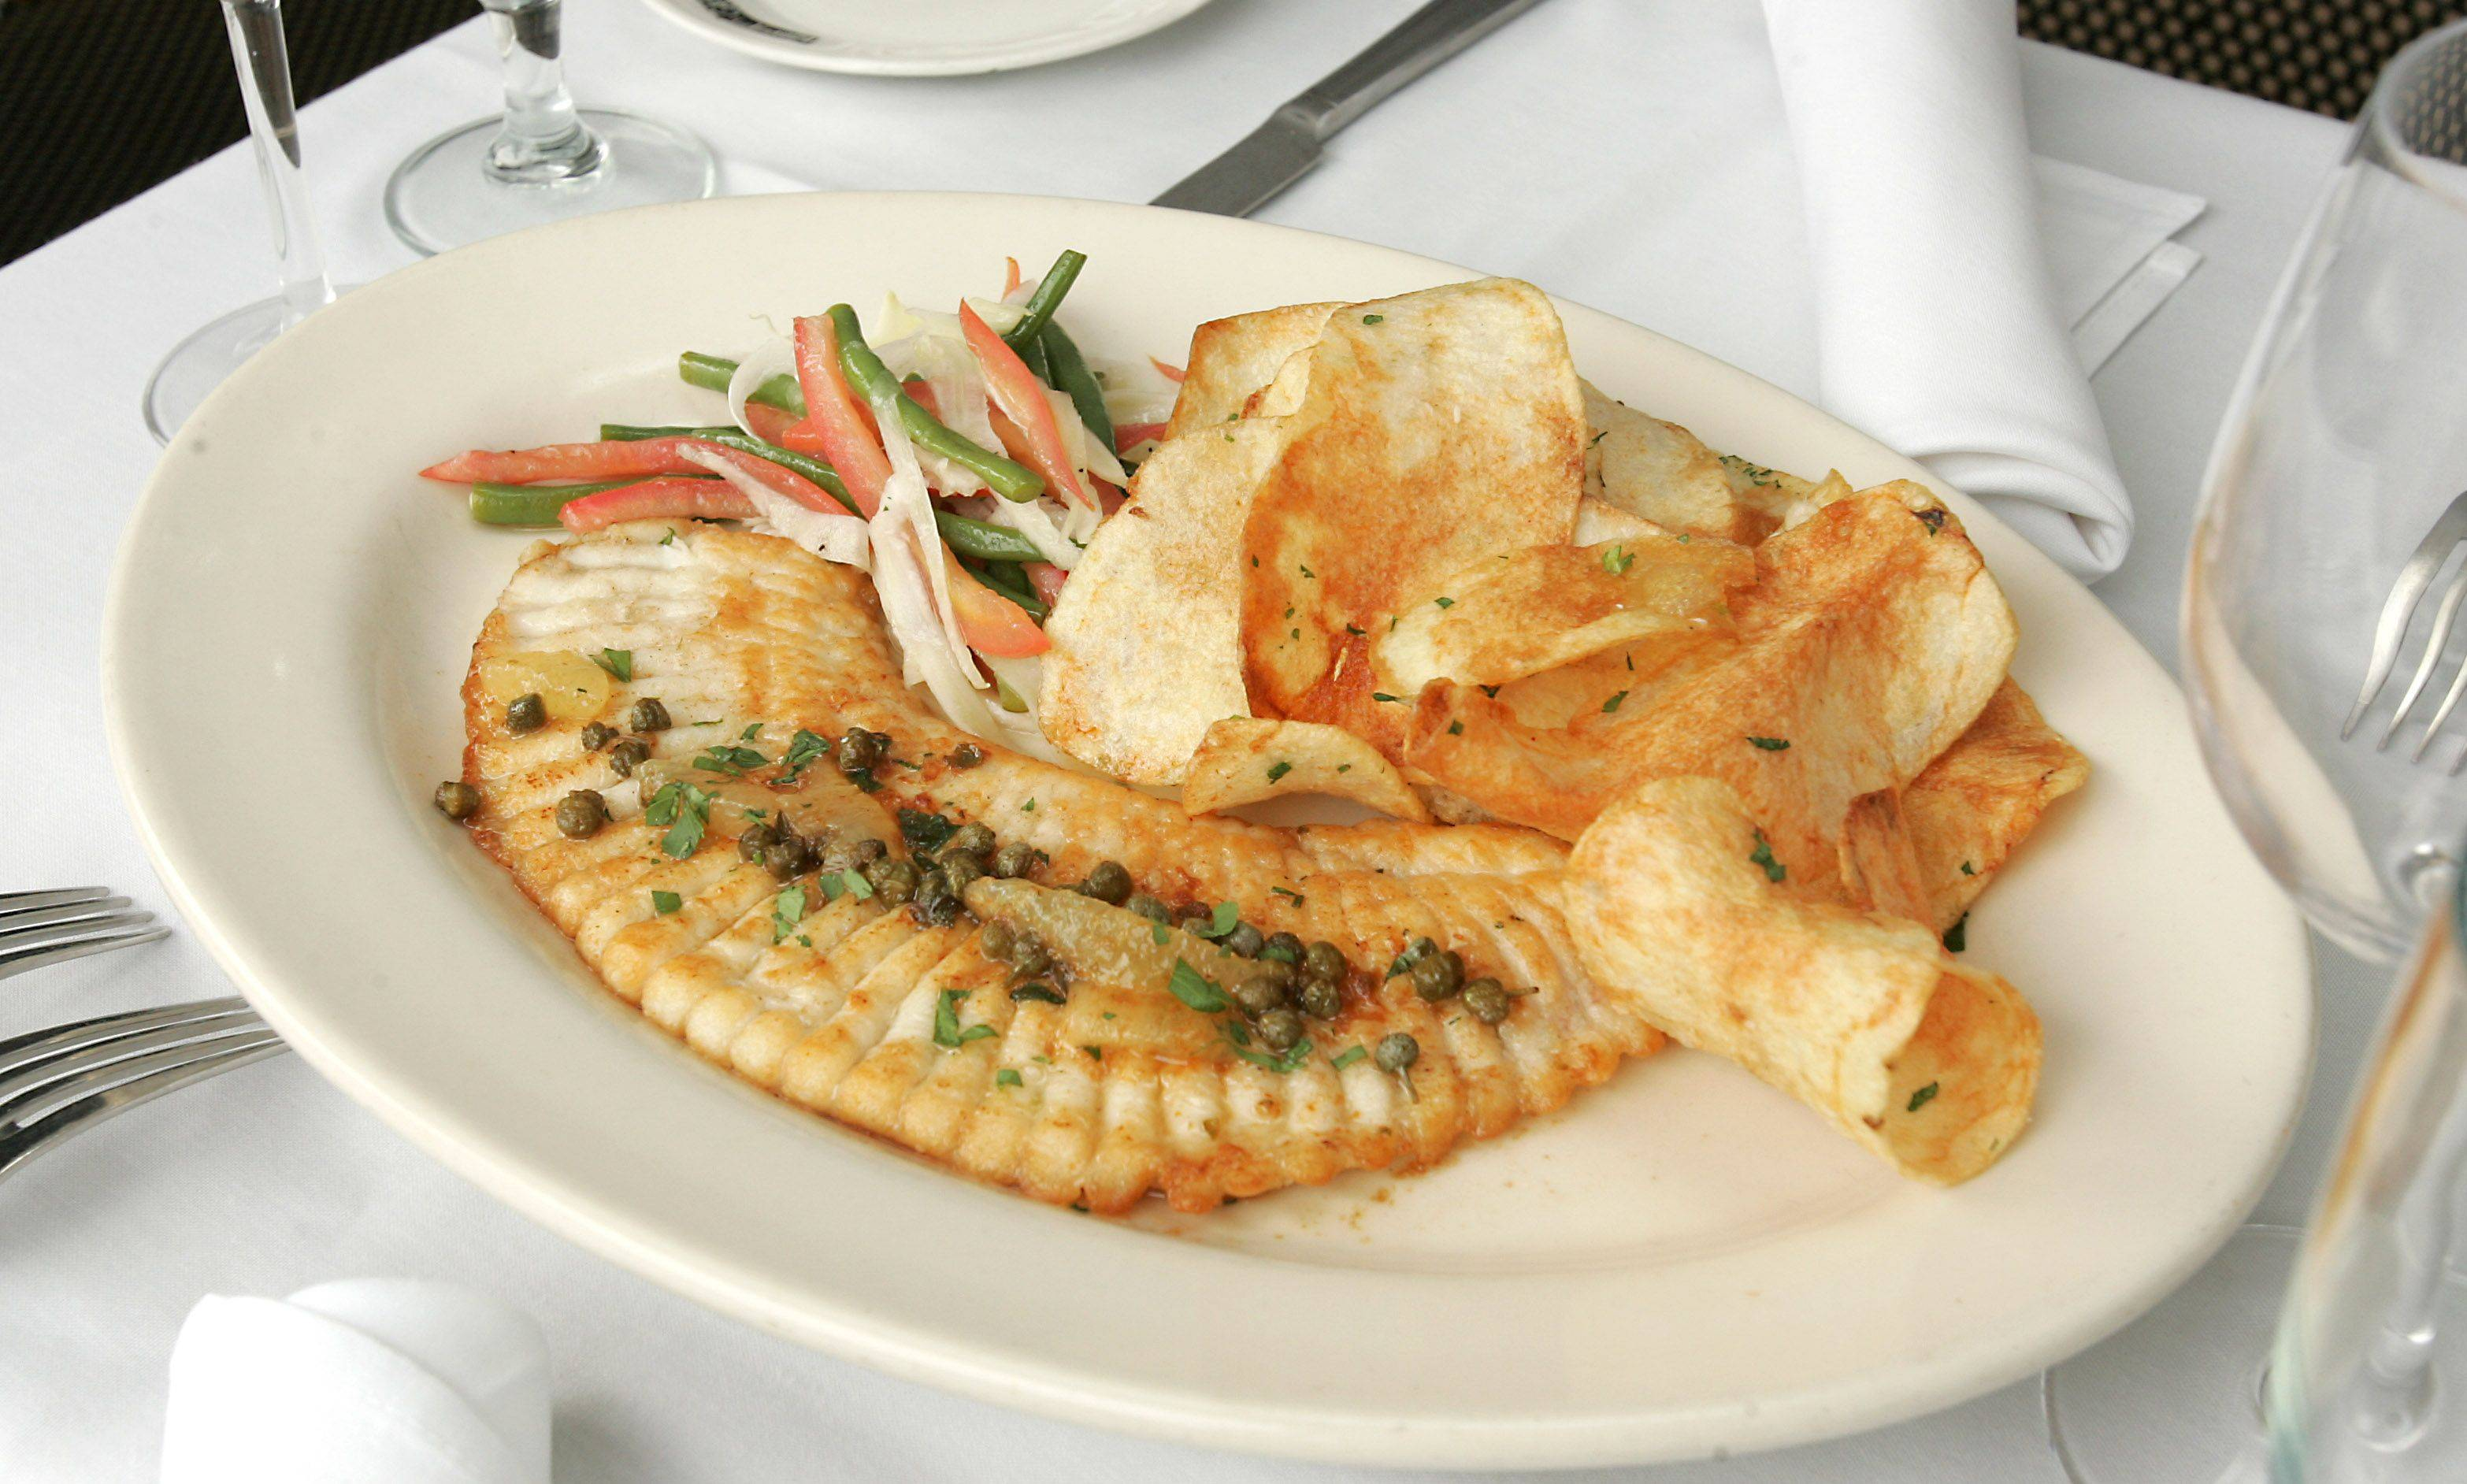 Chef Bruce Williams serves skate wing with garlic potato chips and summer salad to diners at Mon Ami Gabi Restaurant in Oak Brook.